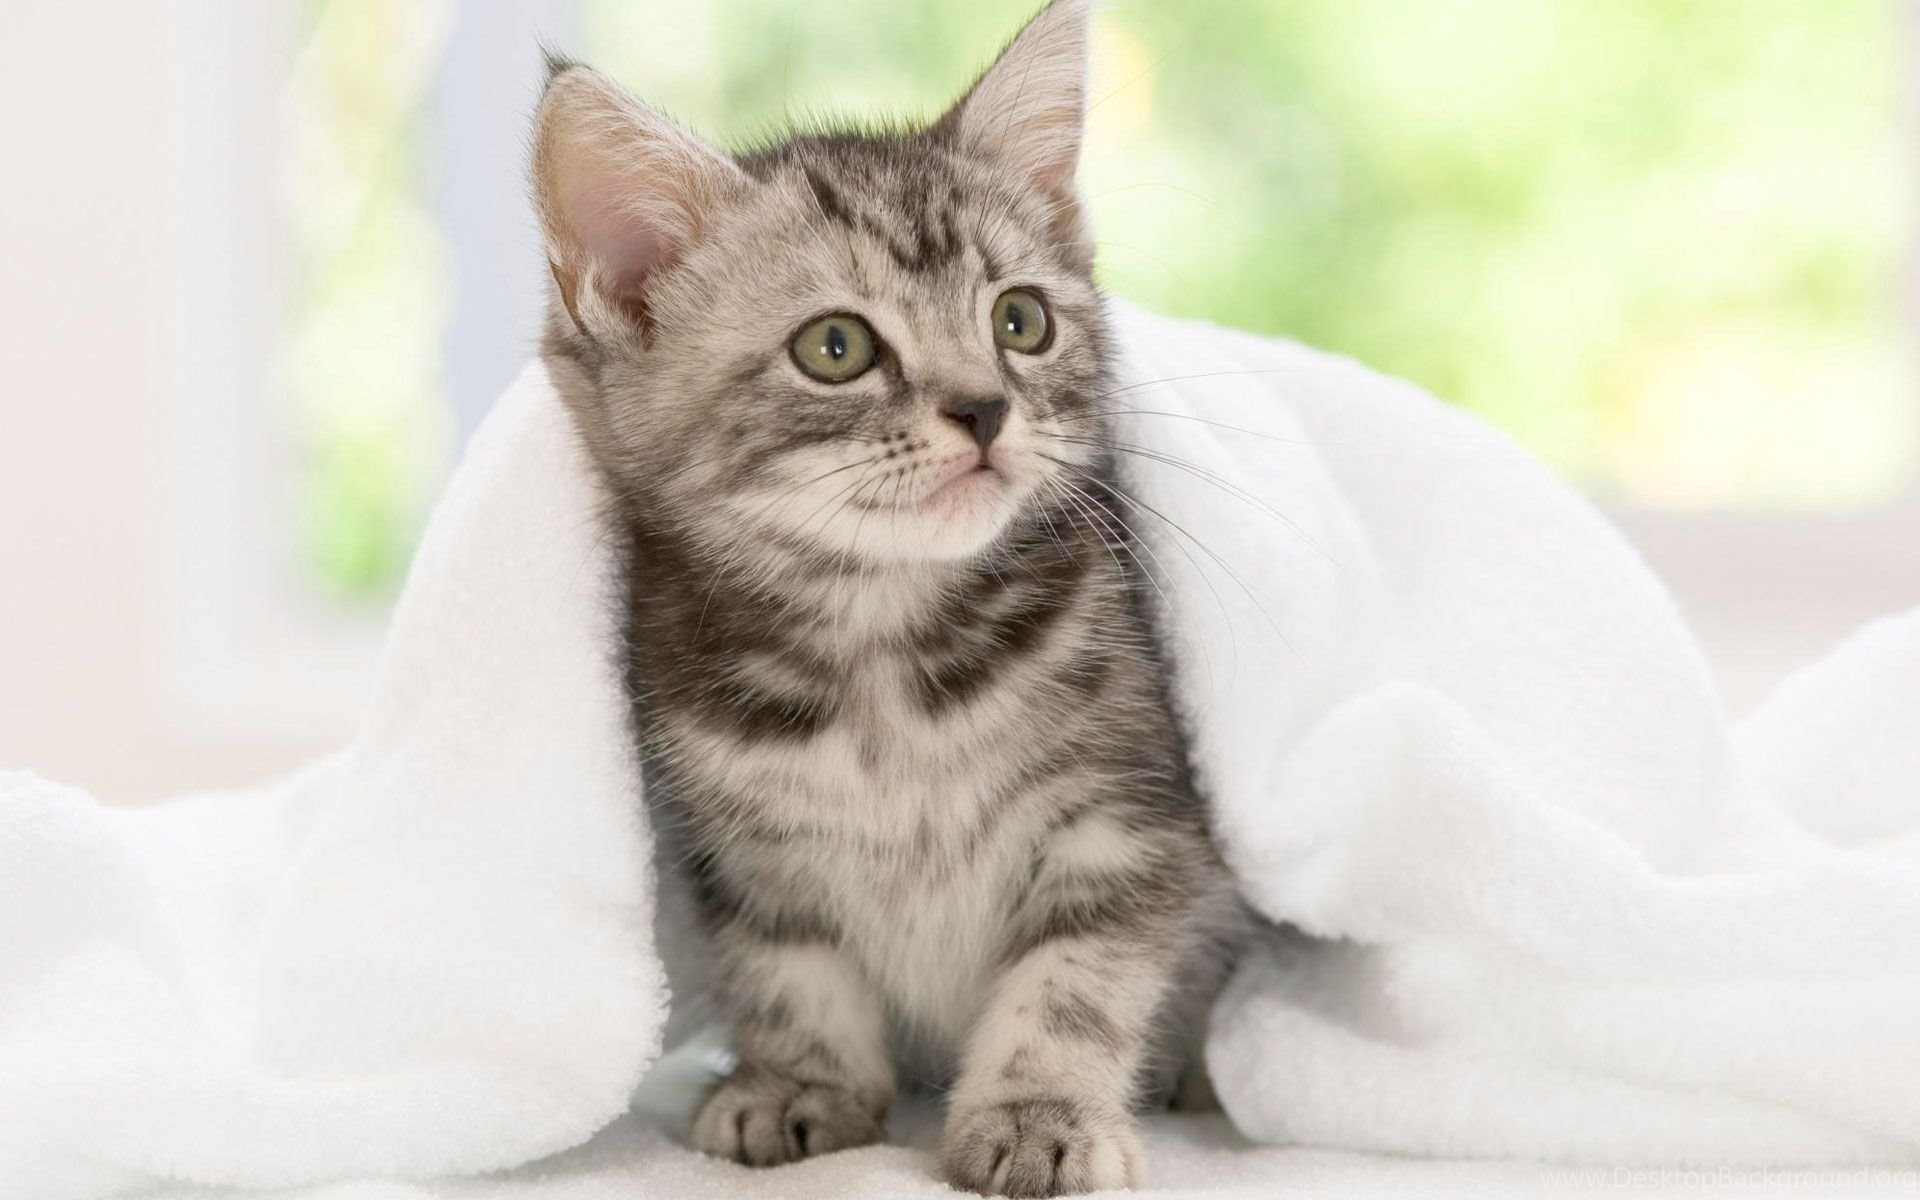 Small Cute Kittens Breeds Hd Wallpapers Best Quality Wallpapers